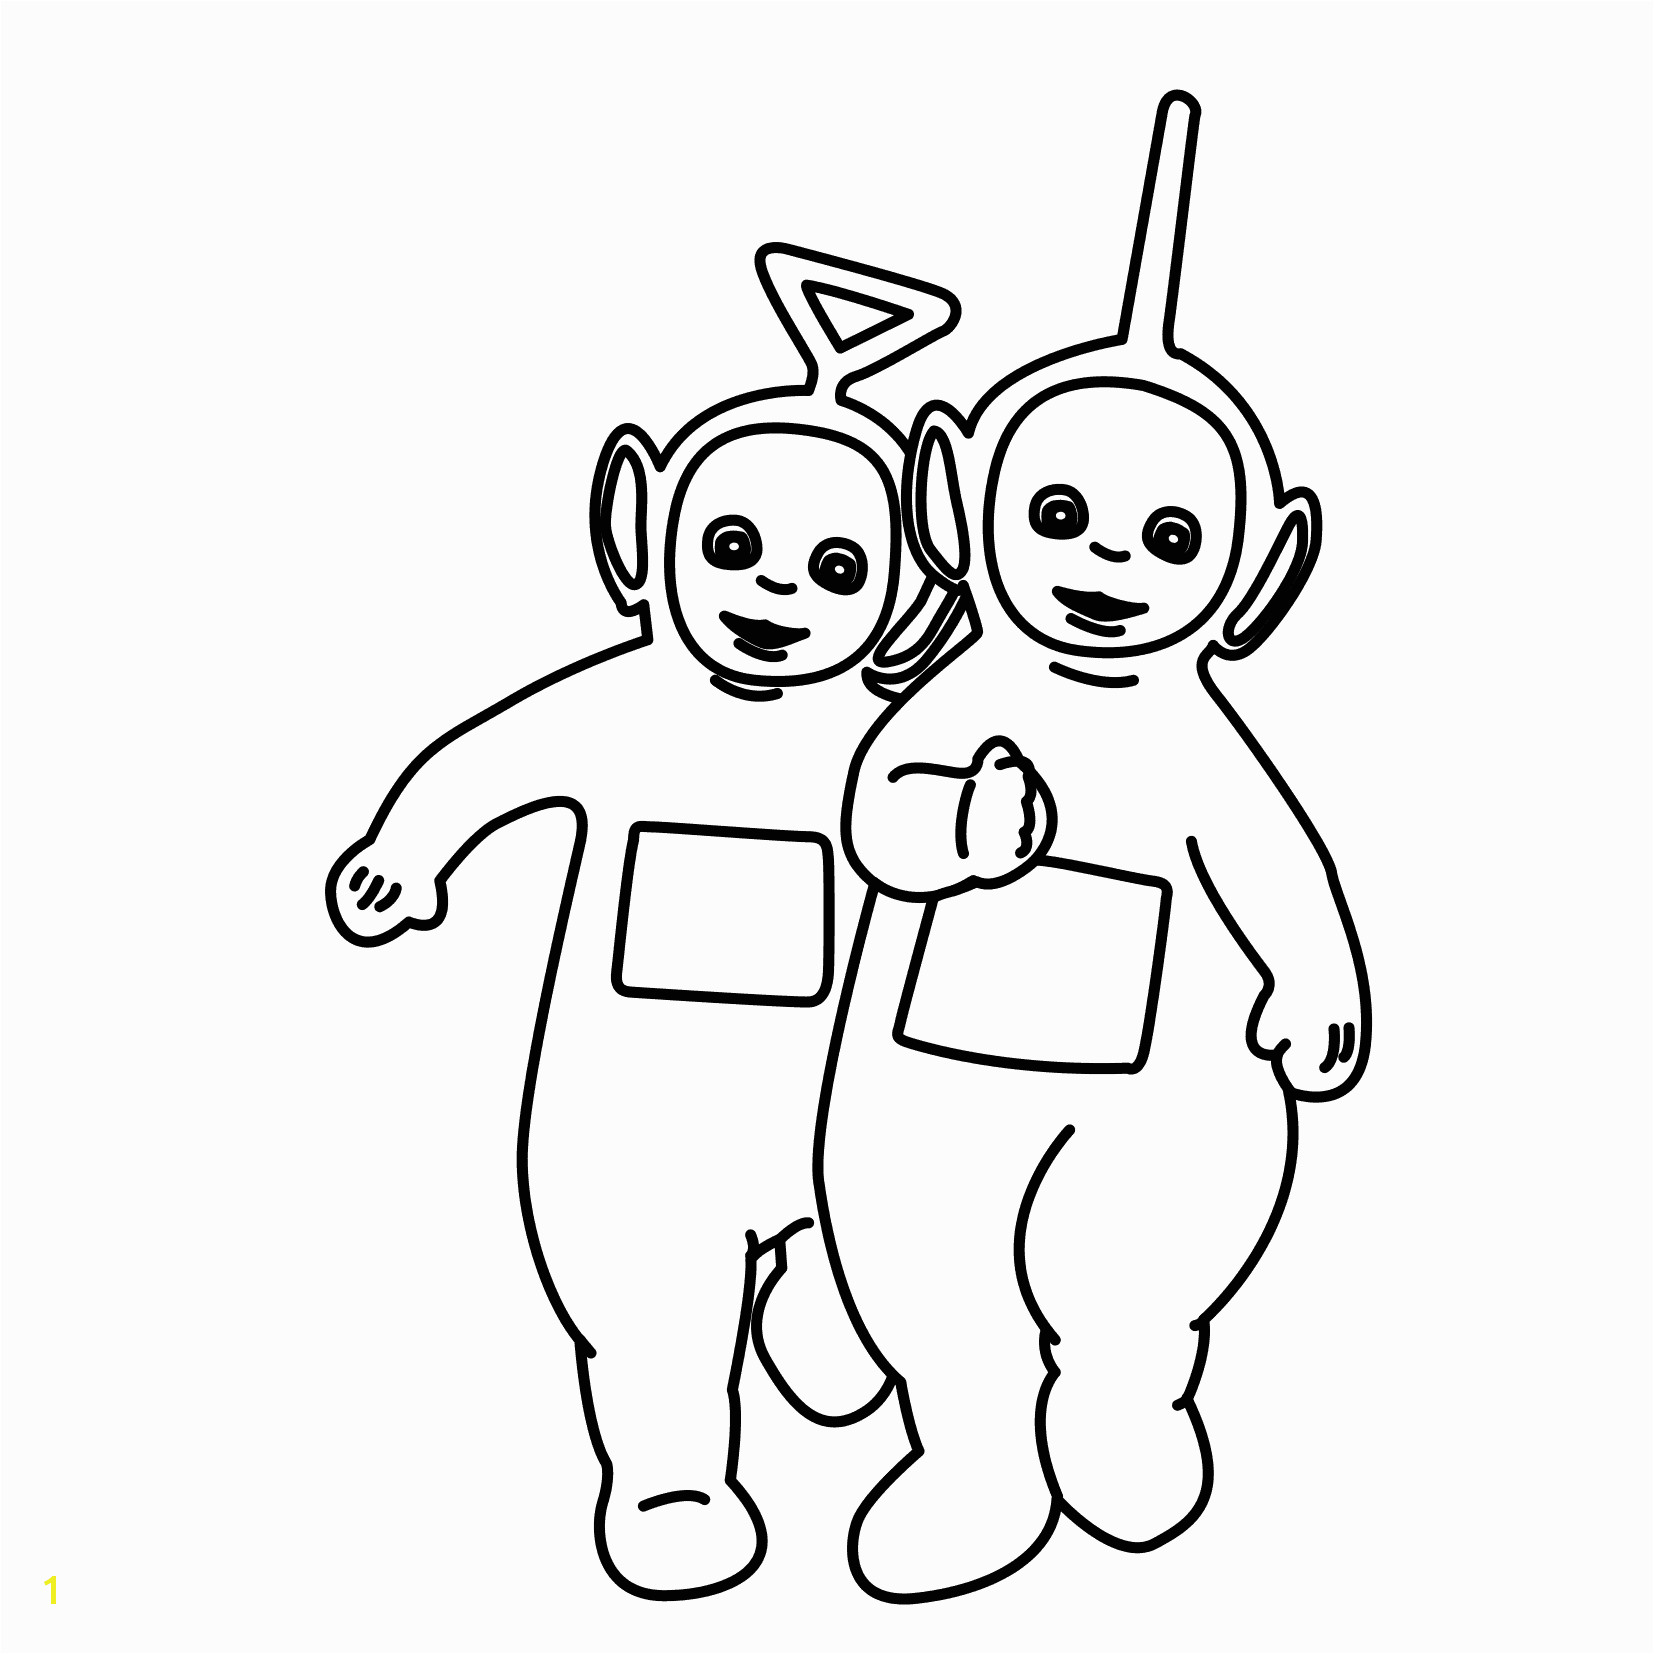 New Teletubbies Coloring Pages Download 2 q Tinky Winky Lala Teletubbies Coloring Pages